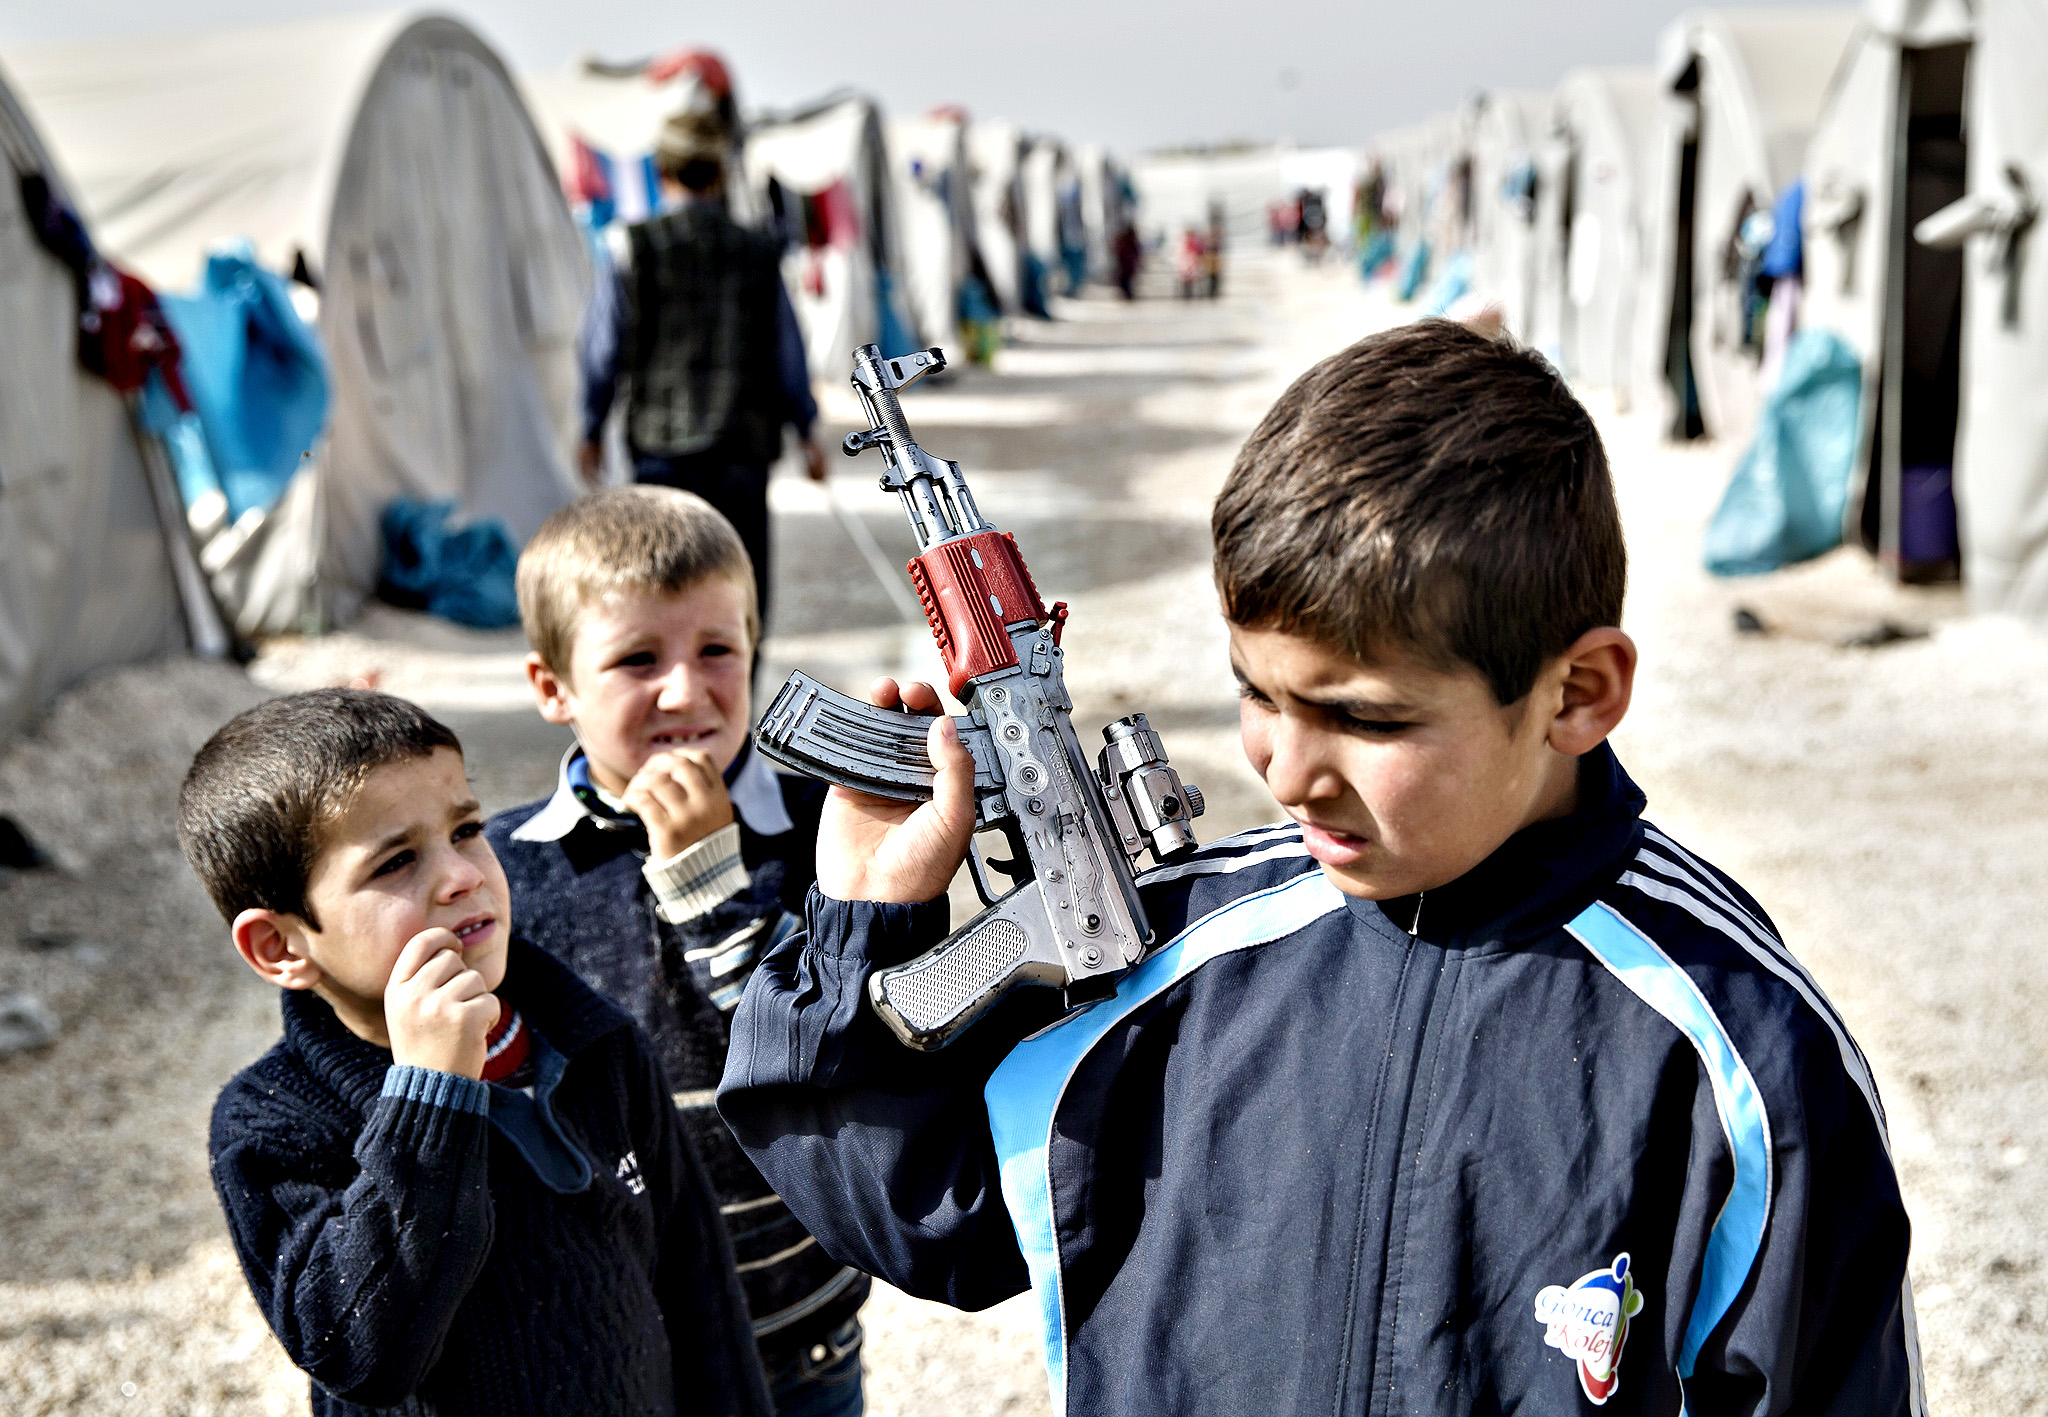 A Syrian Kurdish refugee boy from the Kobani area, holds a toy weapon at a camp in Suruc, on the Turkey-Syria border Thursday, Nov. 13, 2014. Kobani, also known as Ayn Arab, and its surrounding areas, has been under assault by extremists of the Islamic State group since mid-September and is being defended by Kurdish fighters